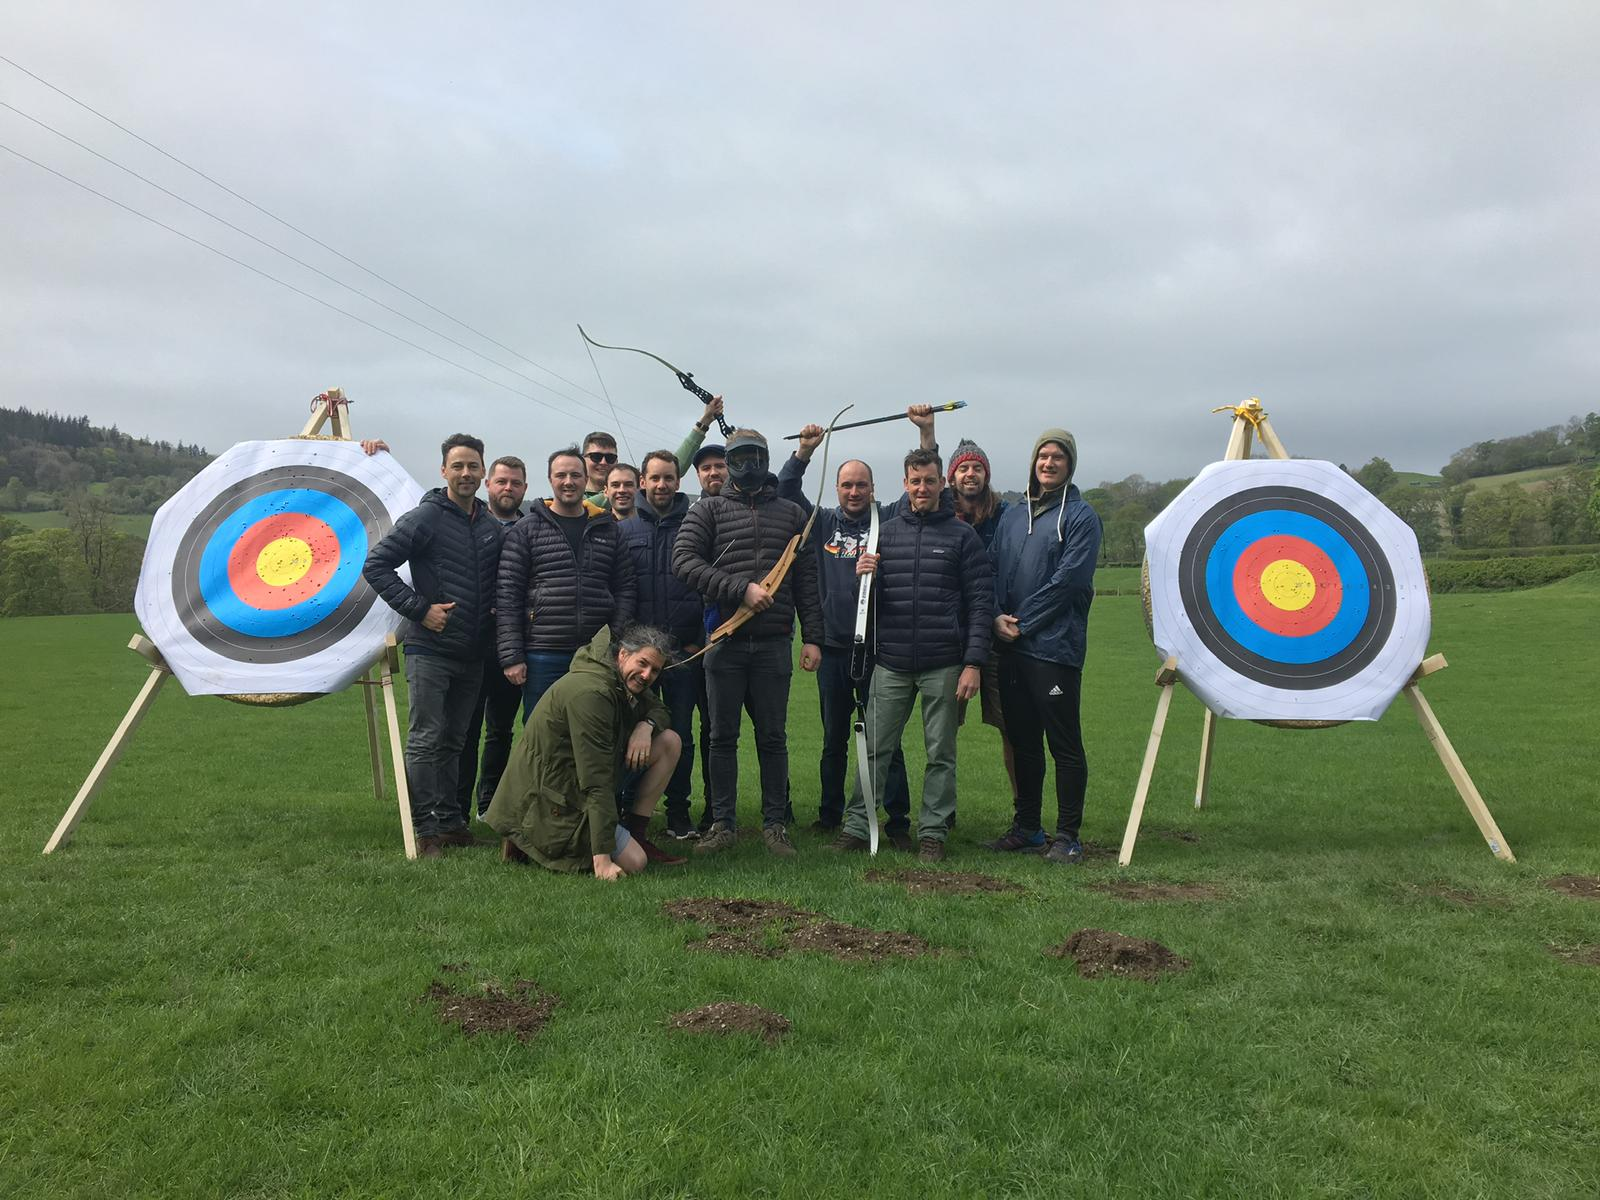 Archery and axe throwing pic 1